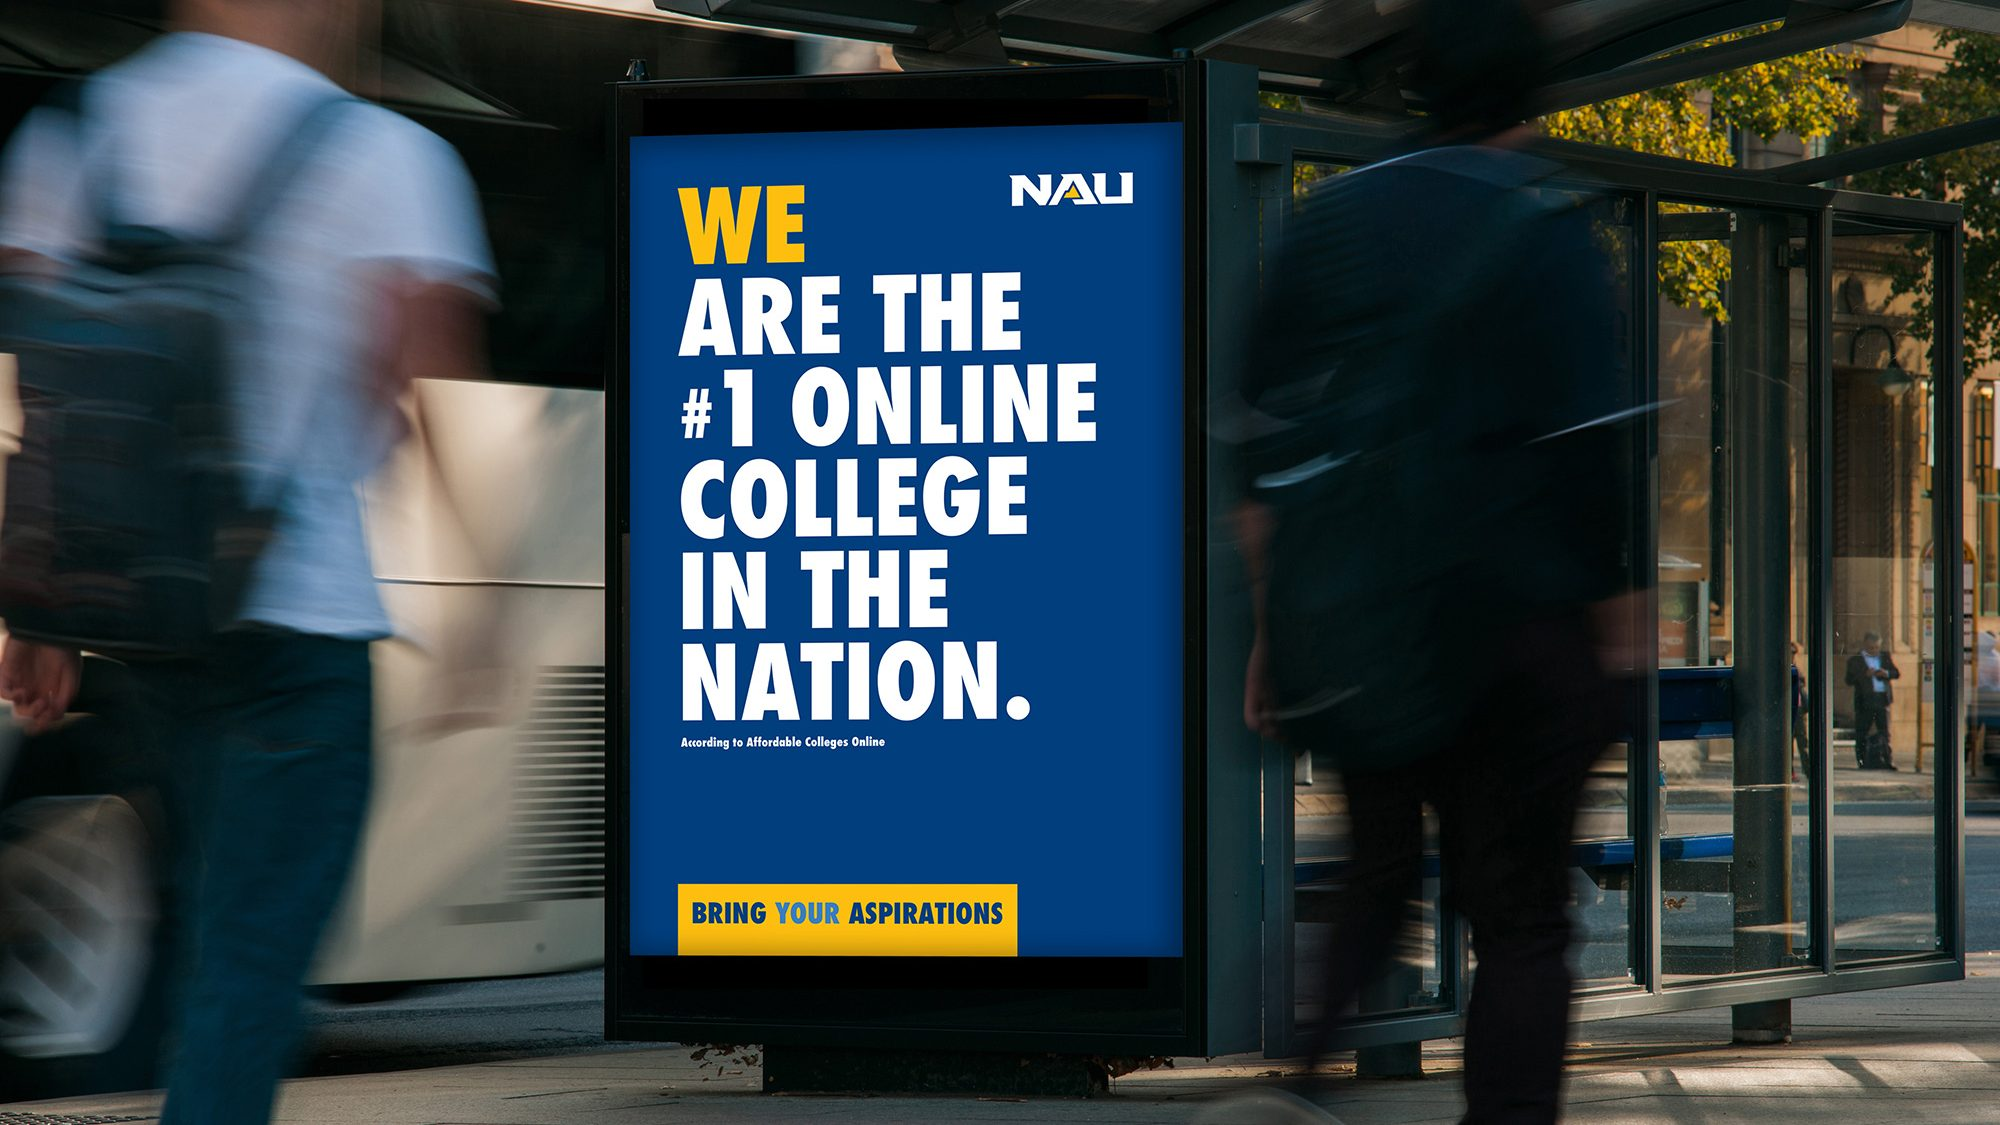 We are the number one online college in the nation.